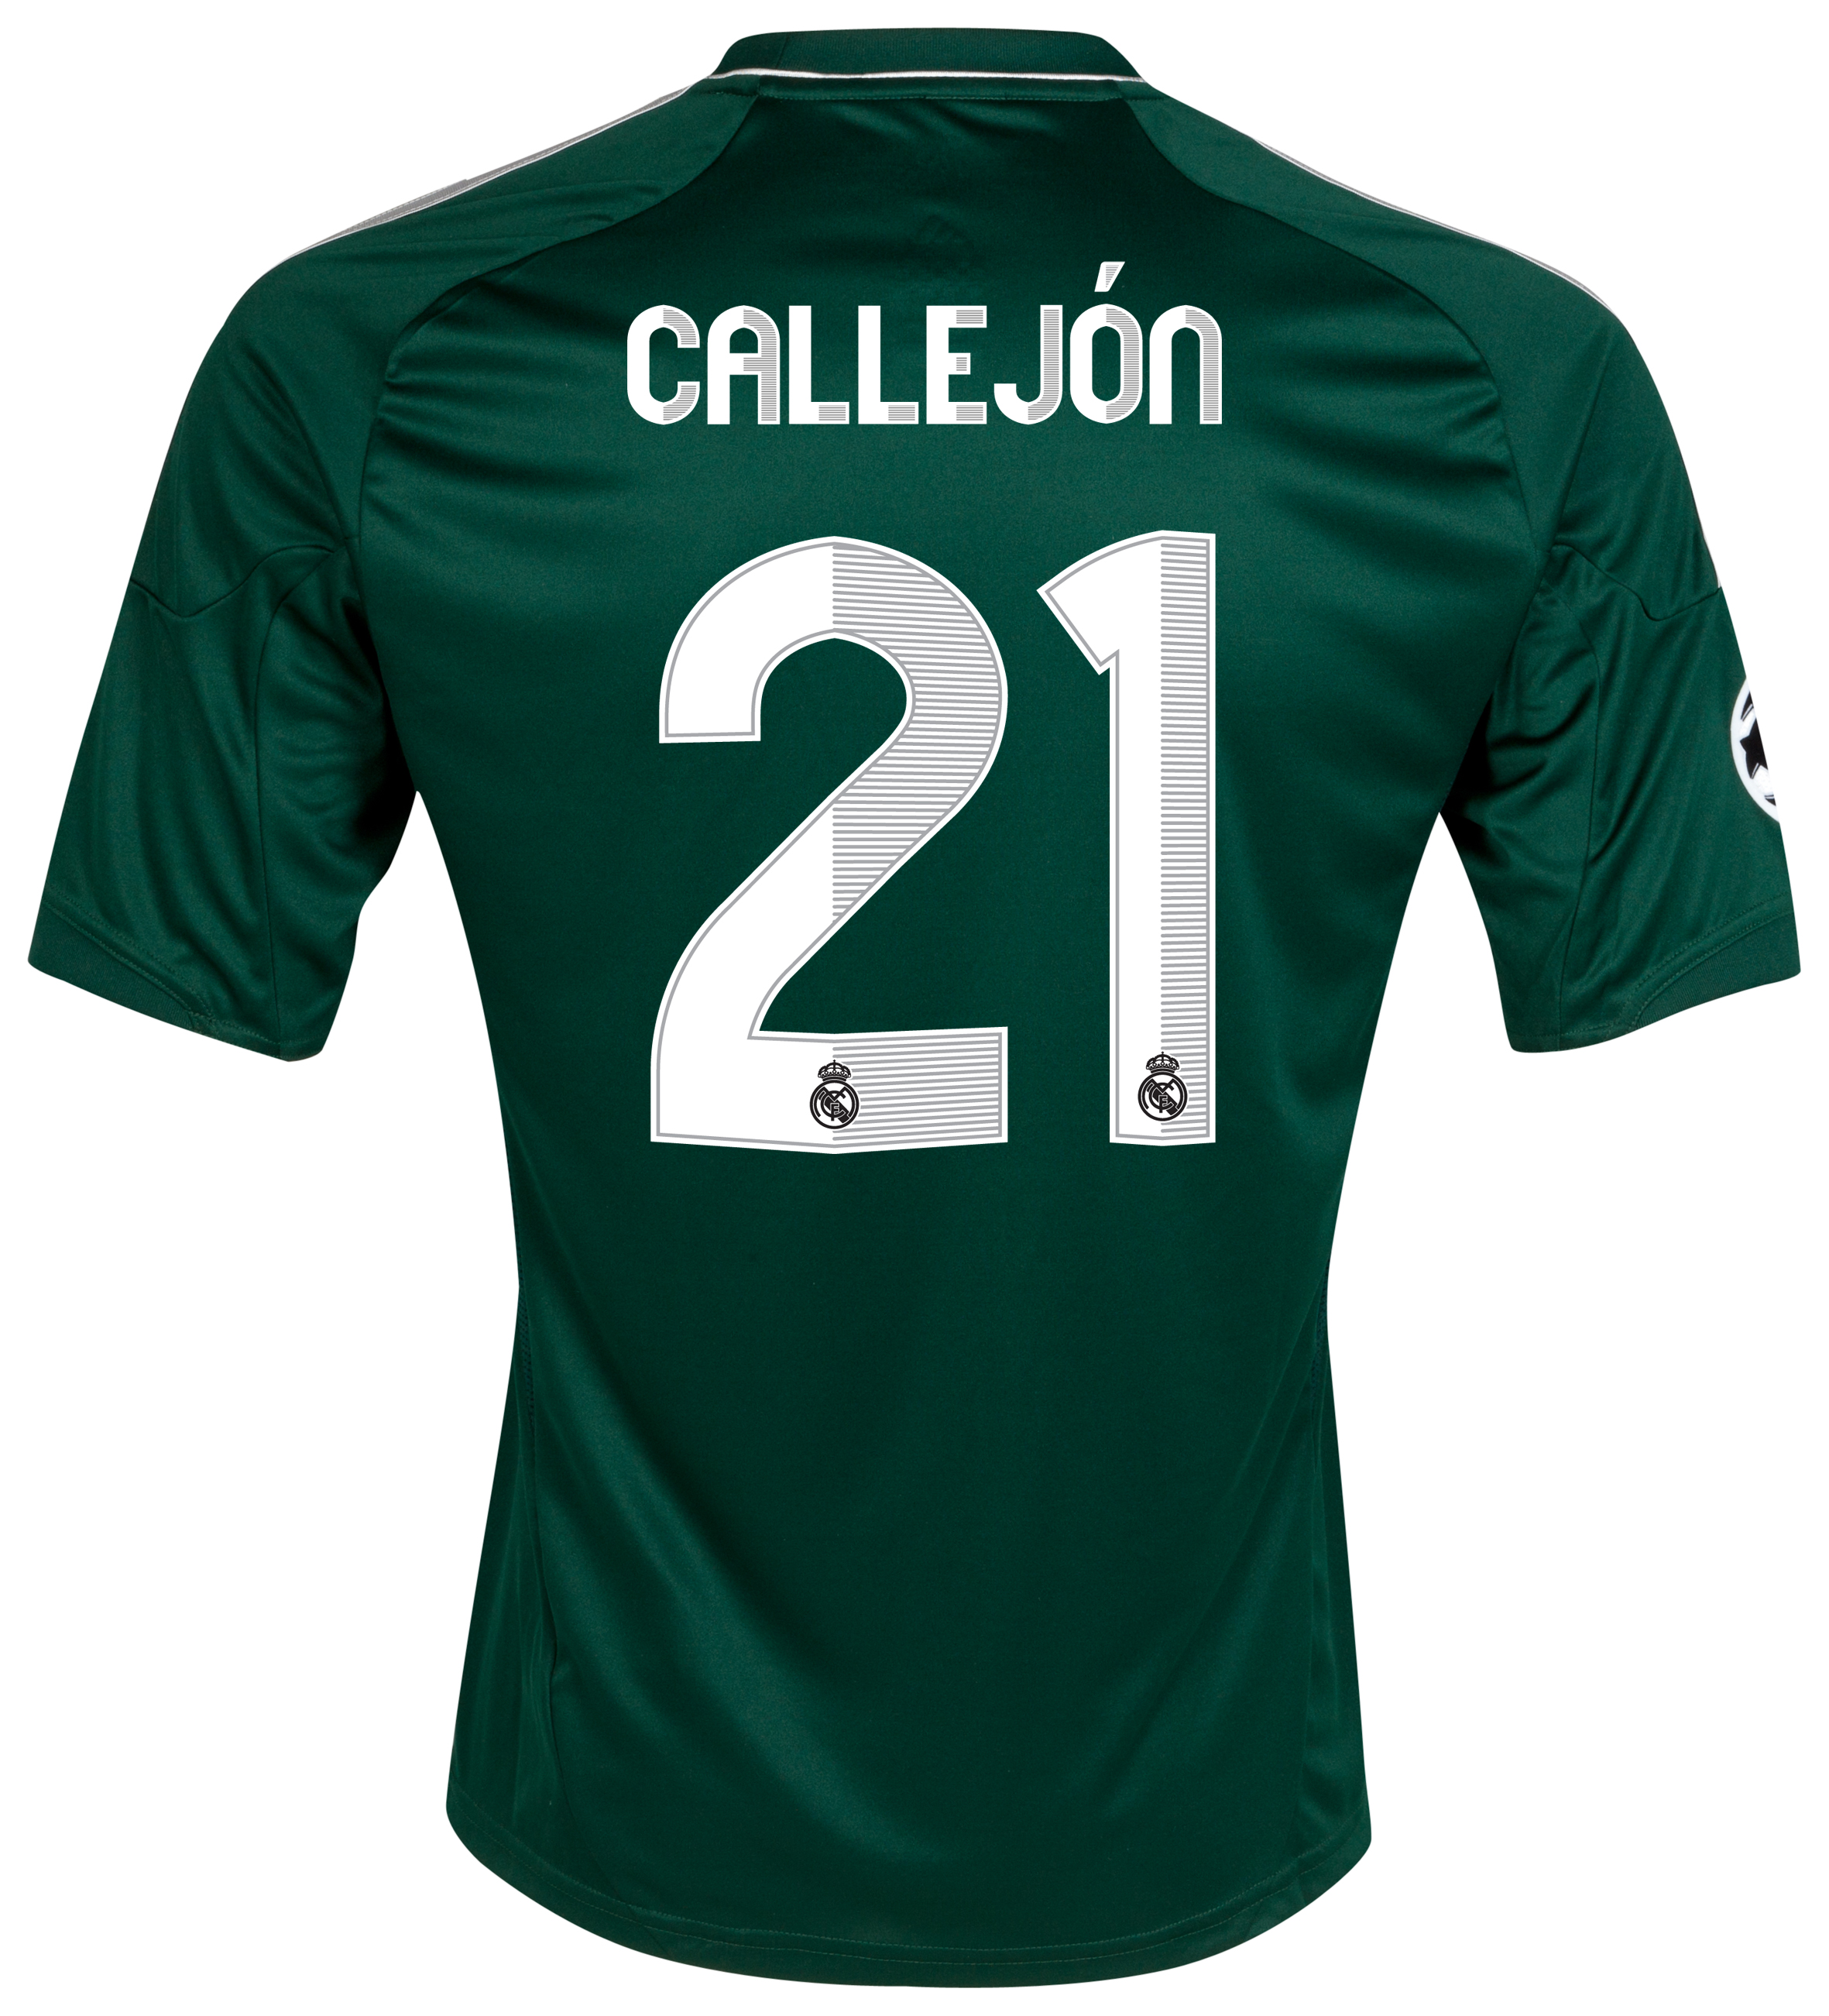 Real Madrid UEFA Champions League Third Shirt 2012/13 with Callejón 21 printing